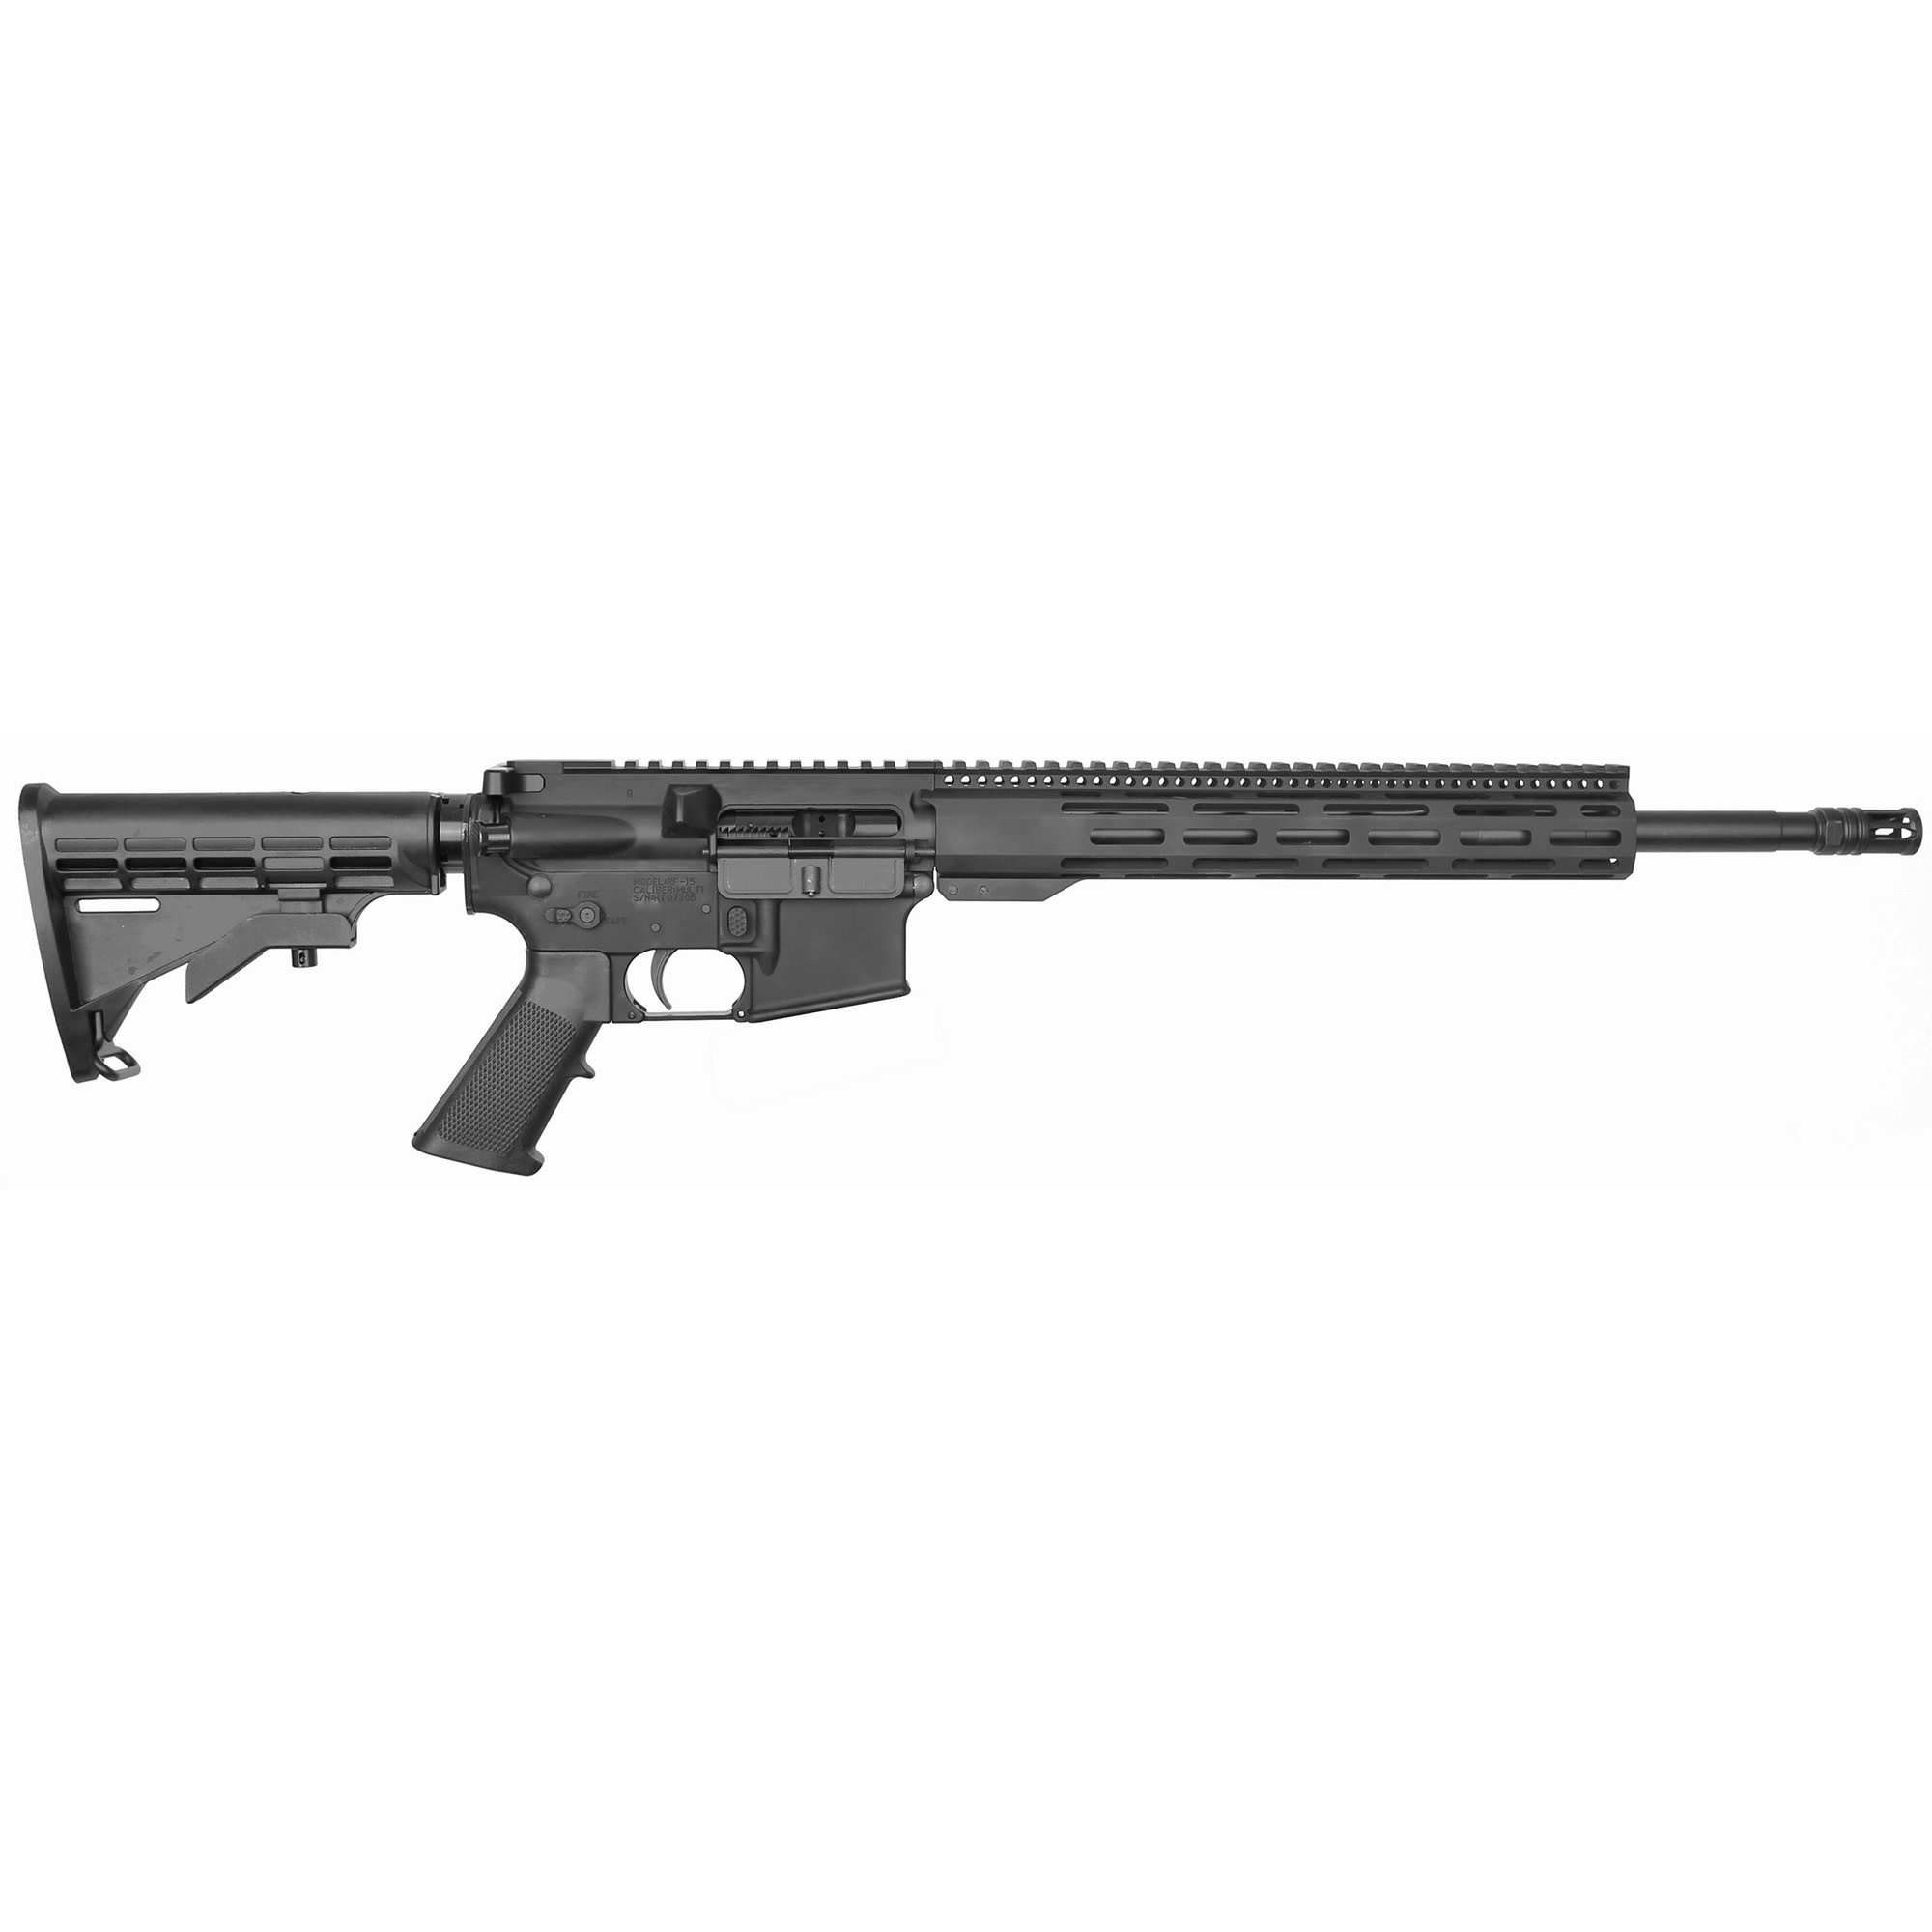 Radical Firearms Radical Firearms ar15 5.56 milspec